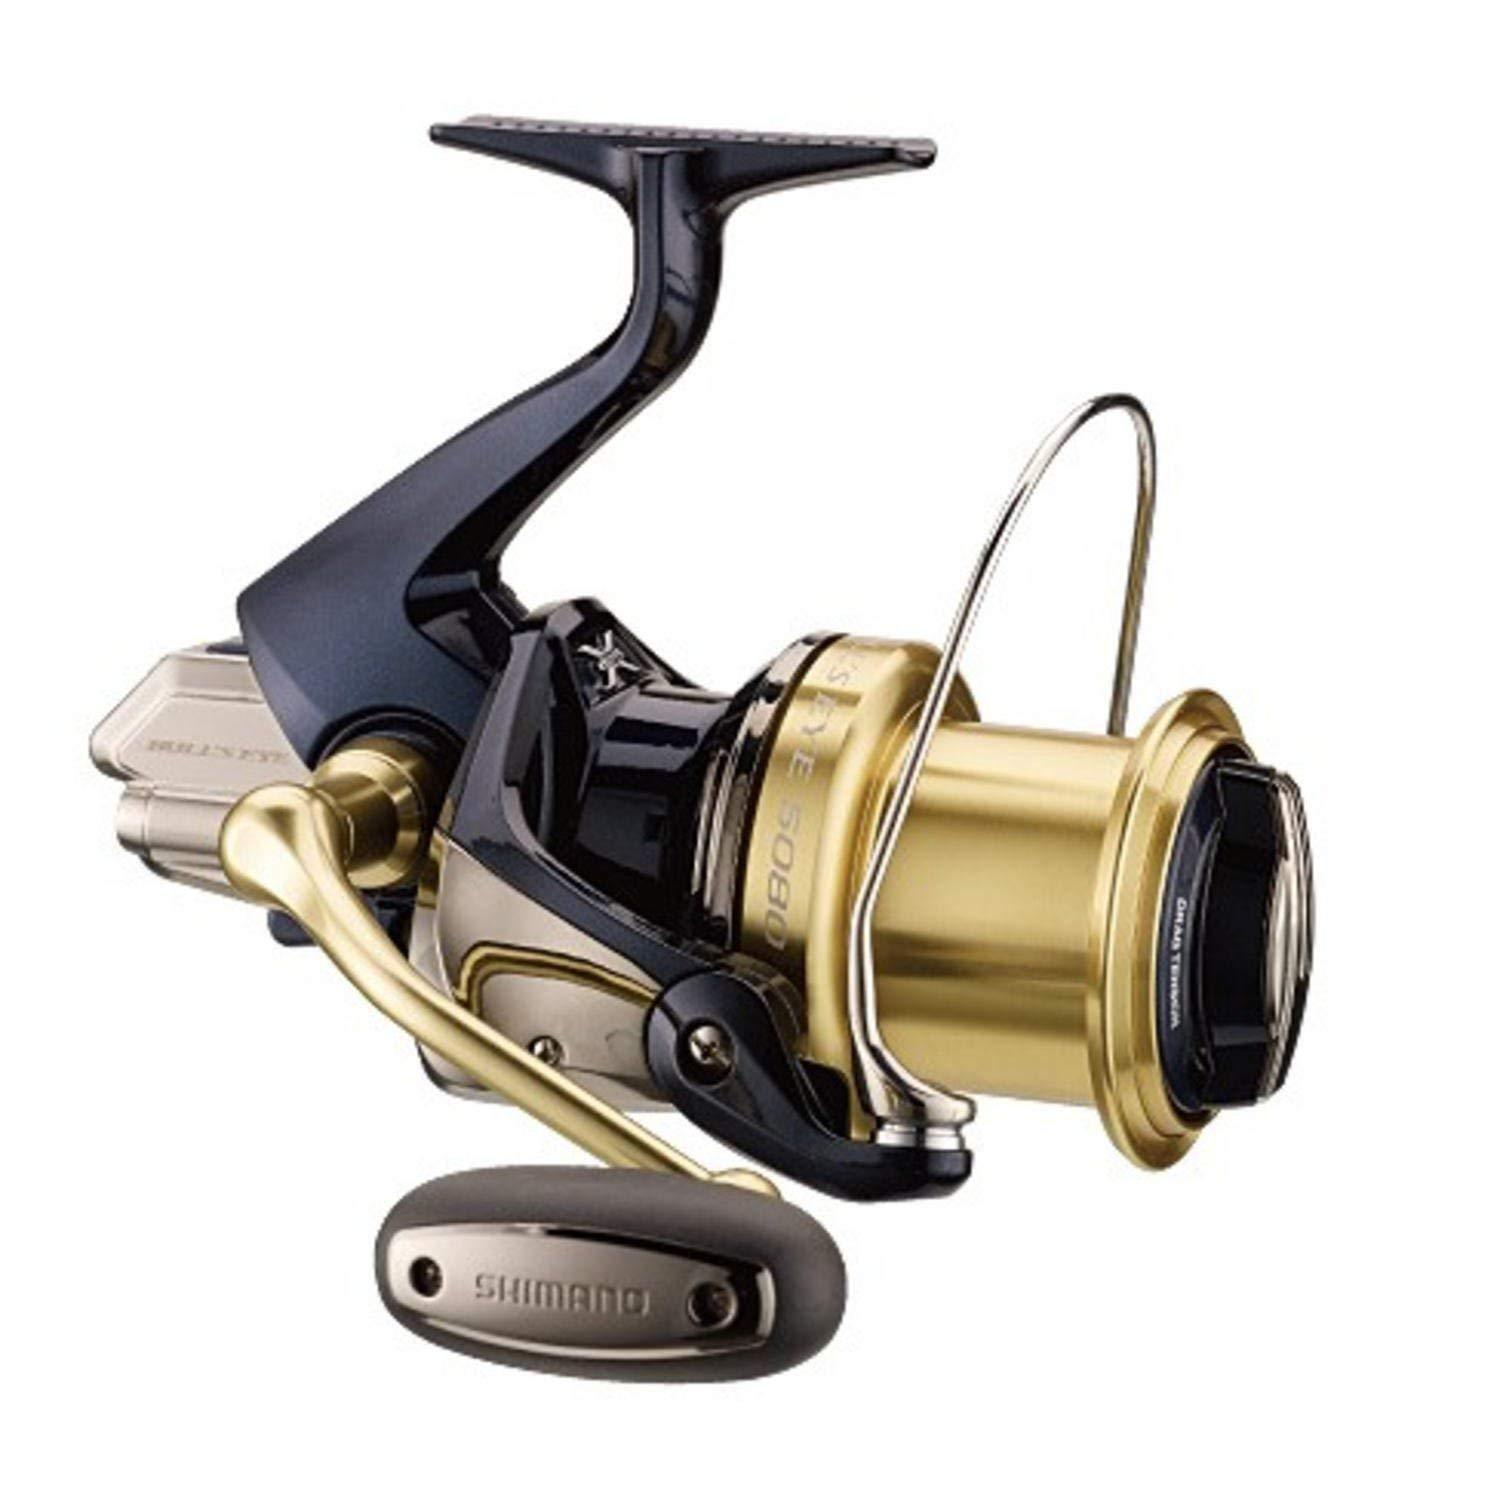 SHIMANO BULL'S EYE 5080 Spinning Reel Fishing NEW JAPAN